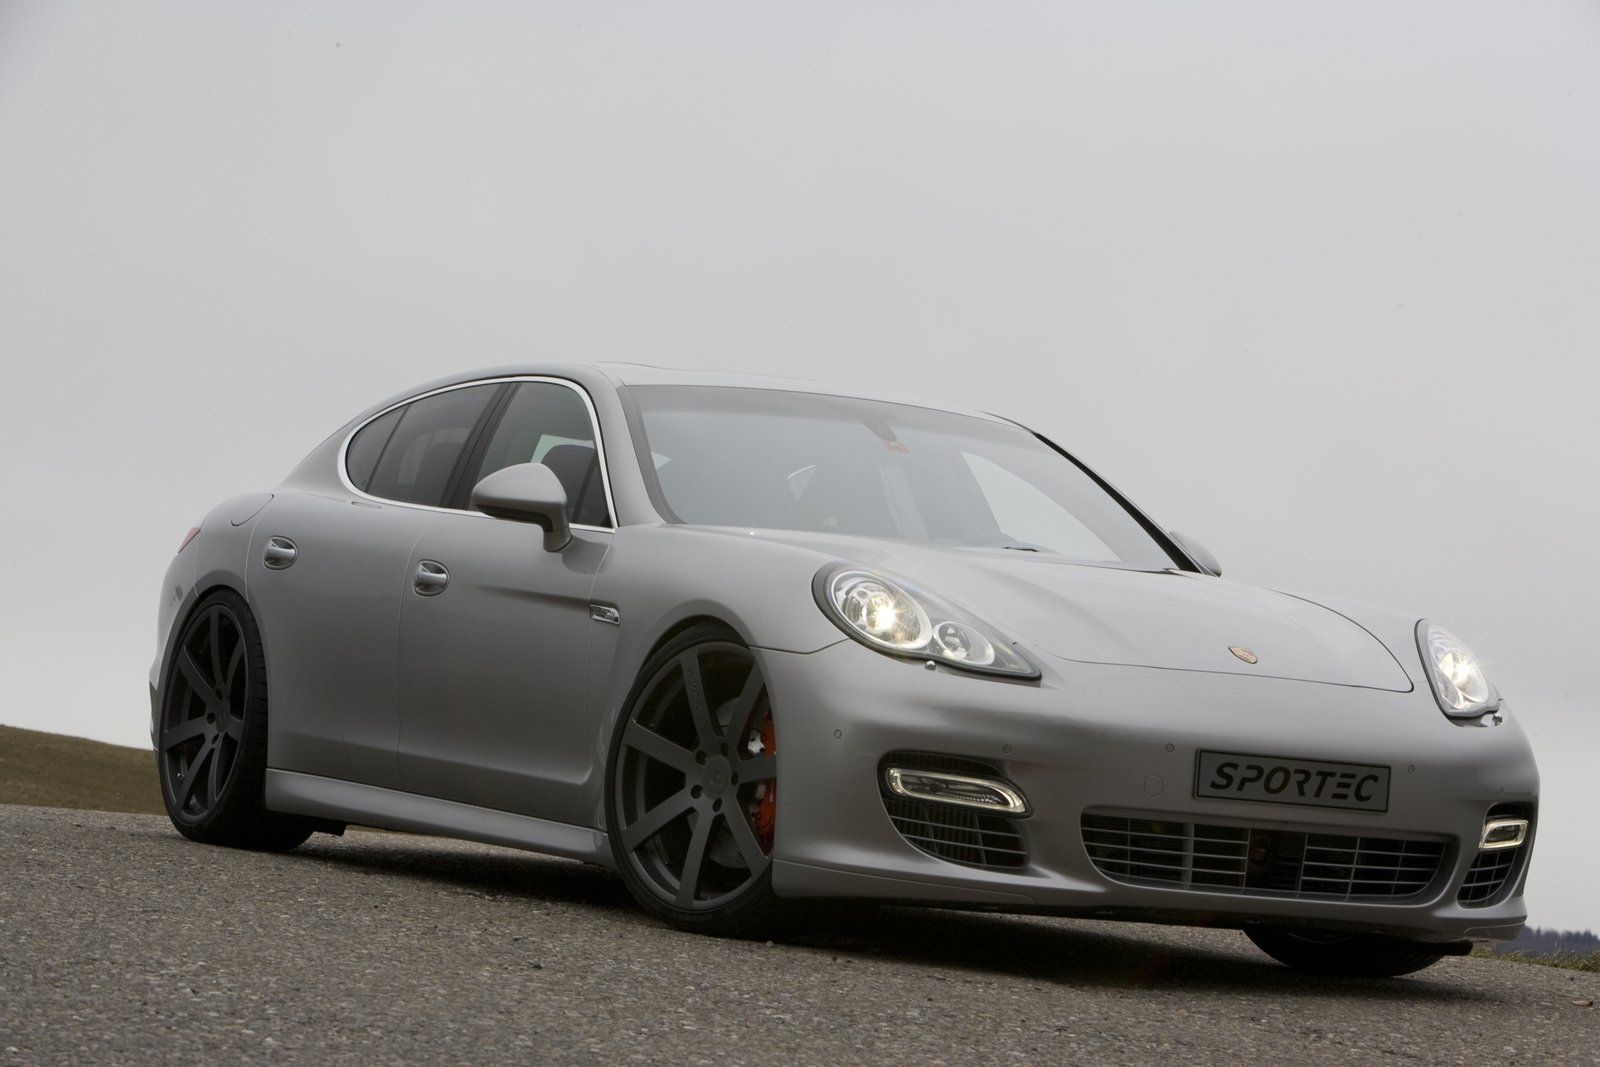 Sportec Panamera Turbo SP560